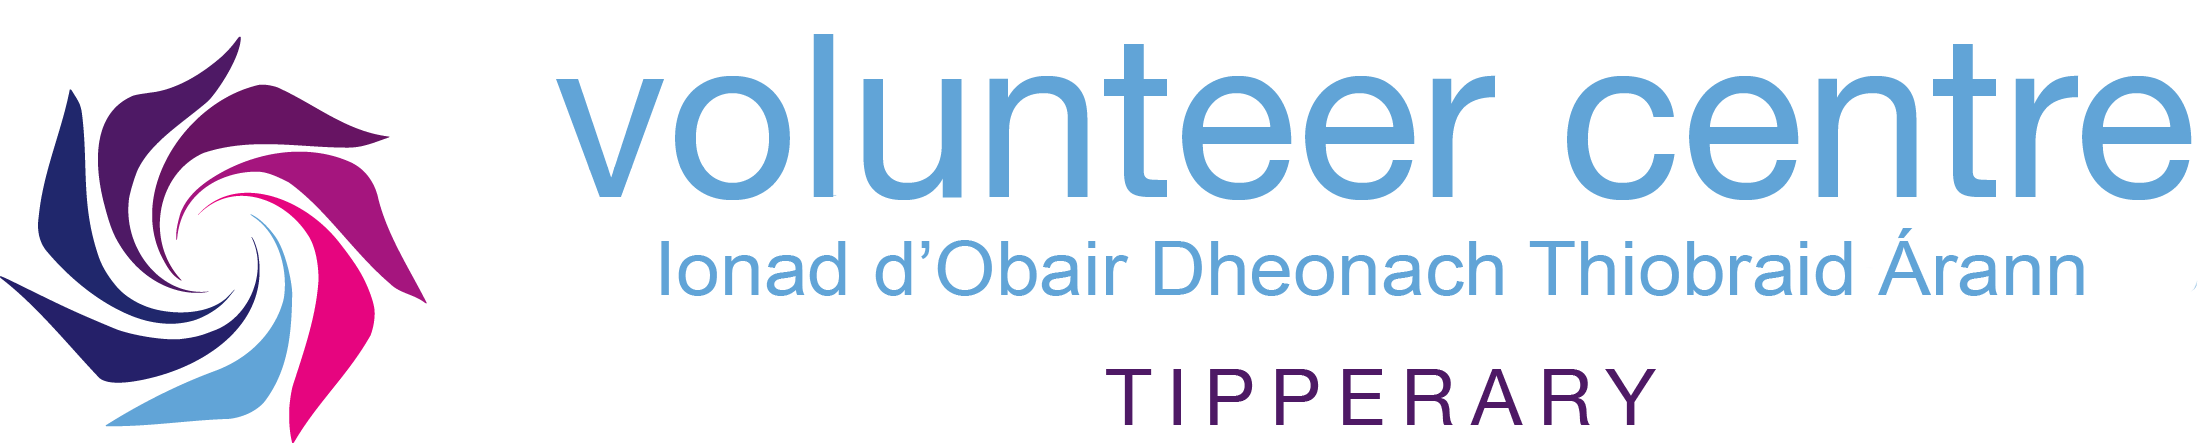 Tipperary Volunteer Centre